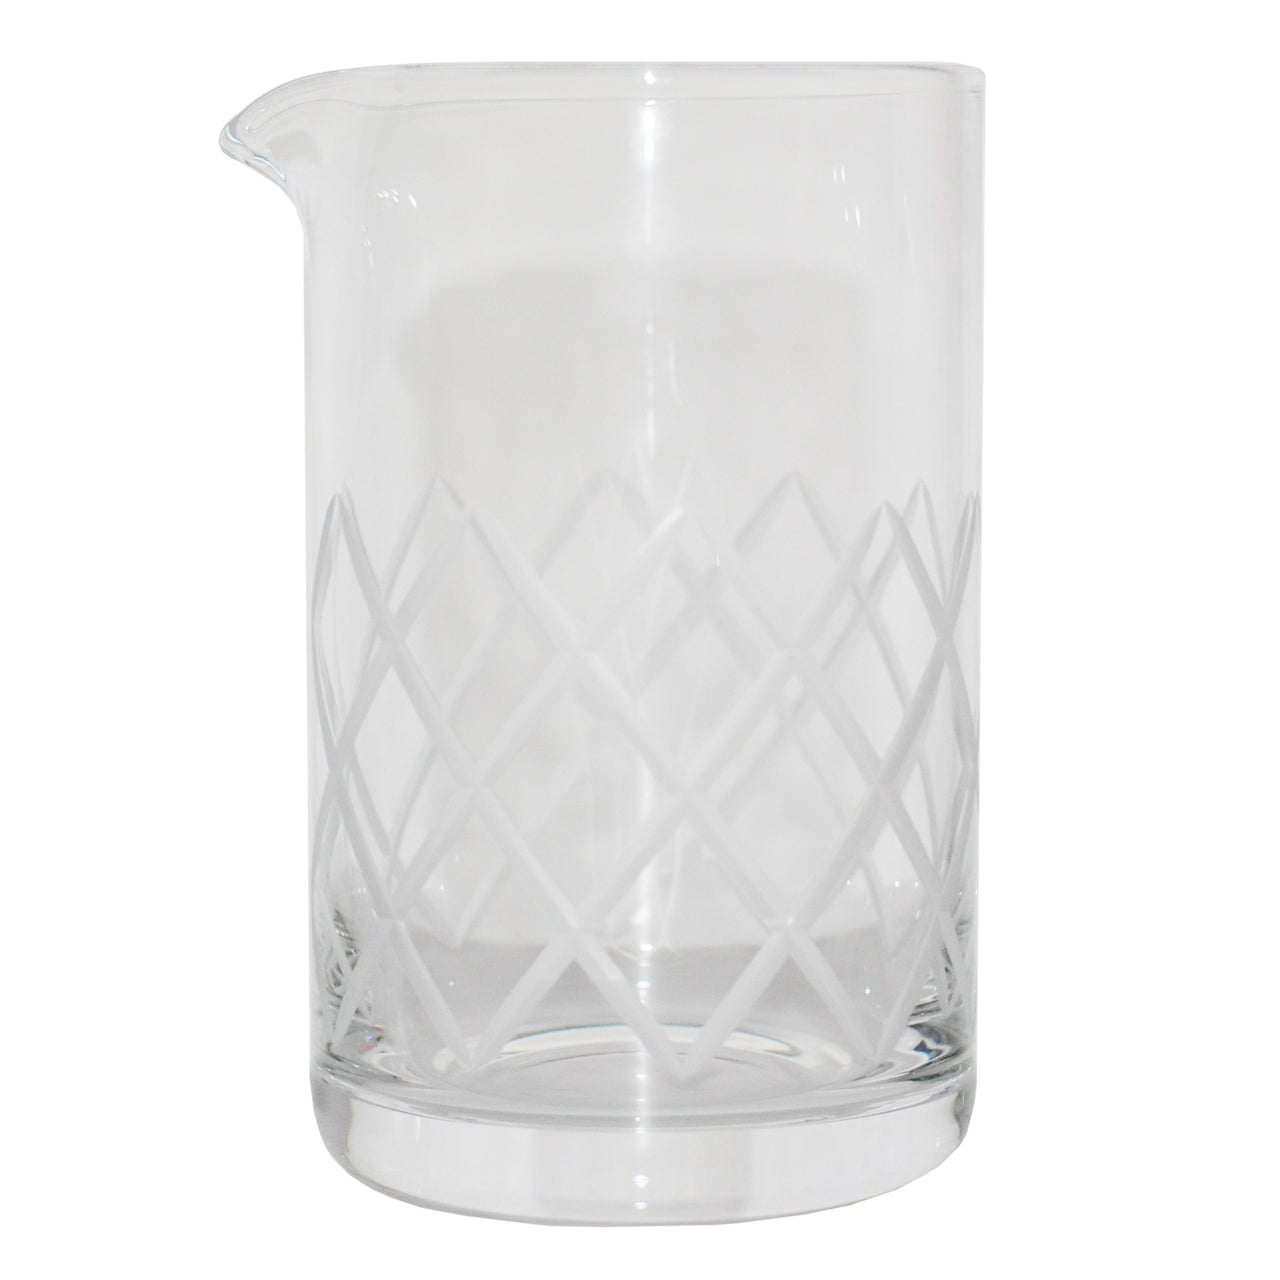 Rona Diamond Cut Crystal Mixing Glass | The Hour Barware